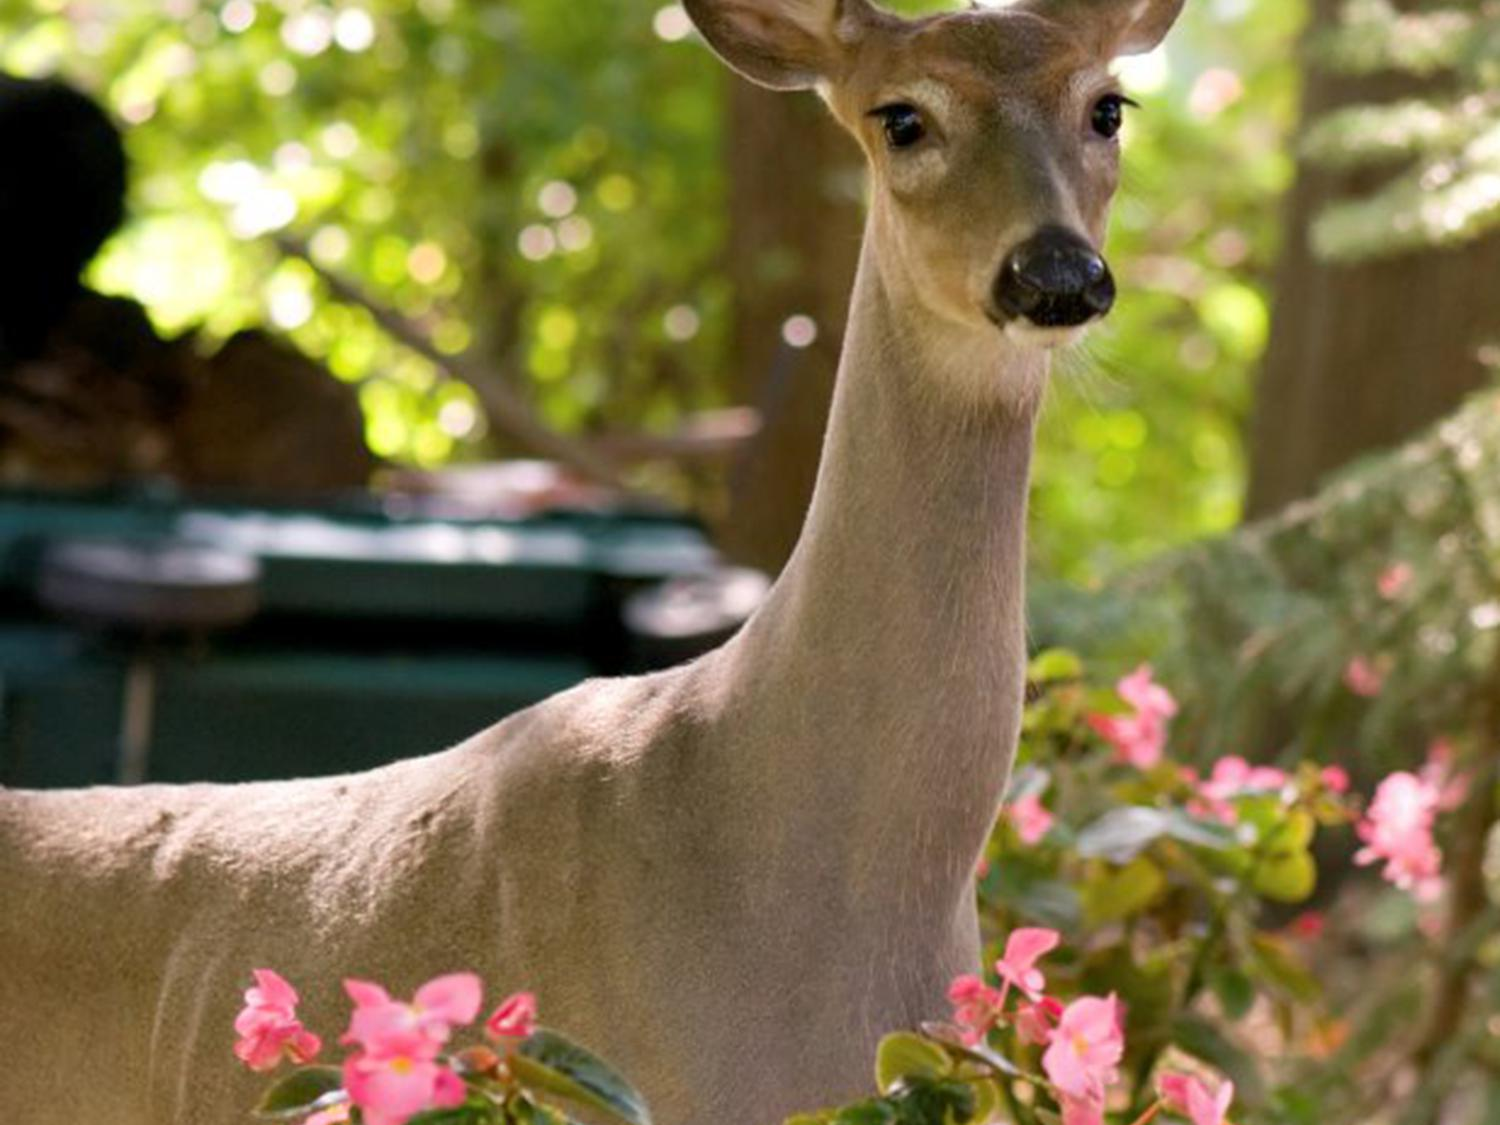 Not my roses keep deer out of the garden mississippi state university extension service - How to keep intruders out of your garden ...